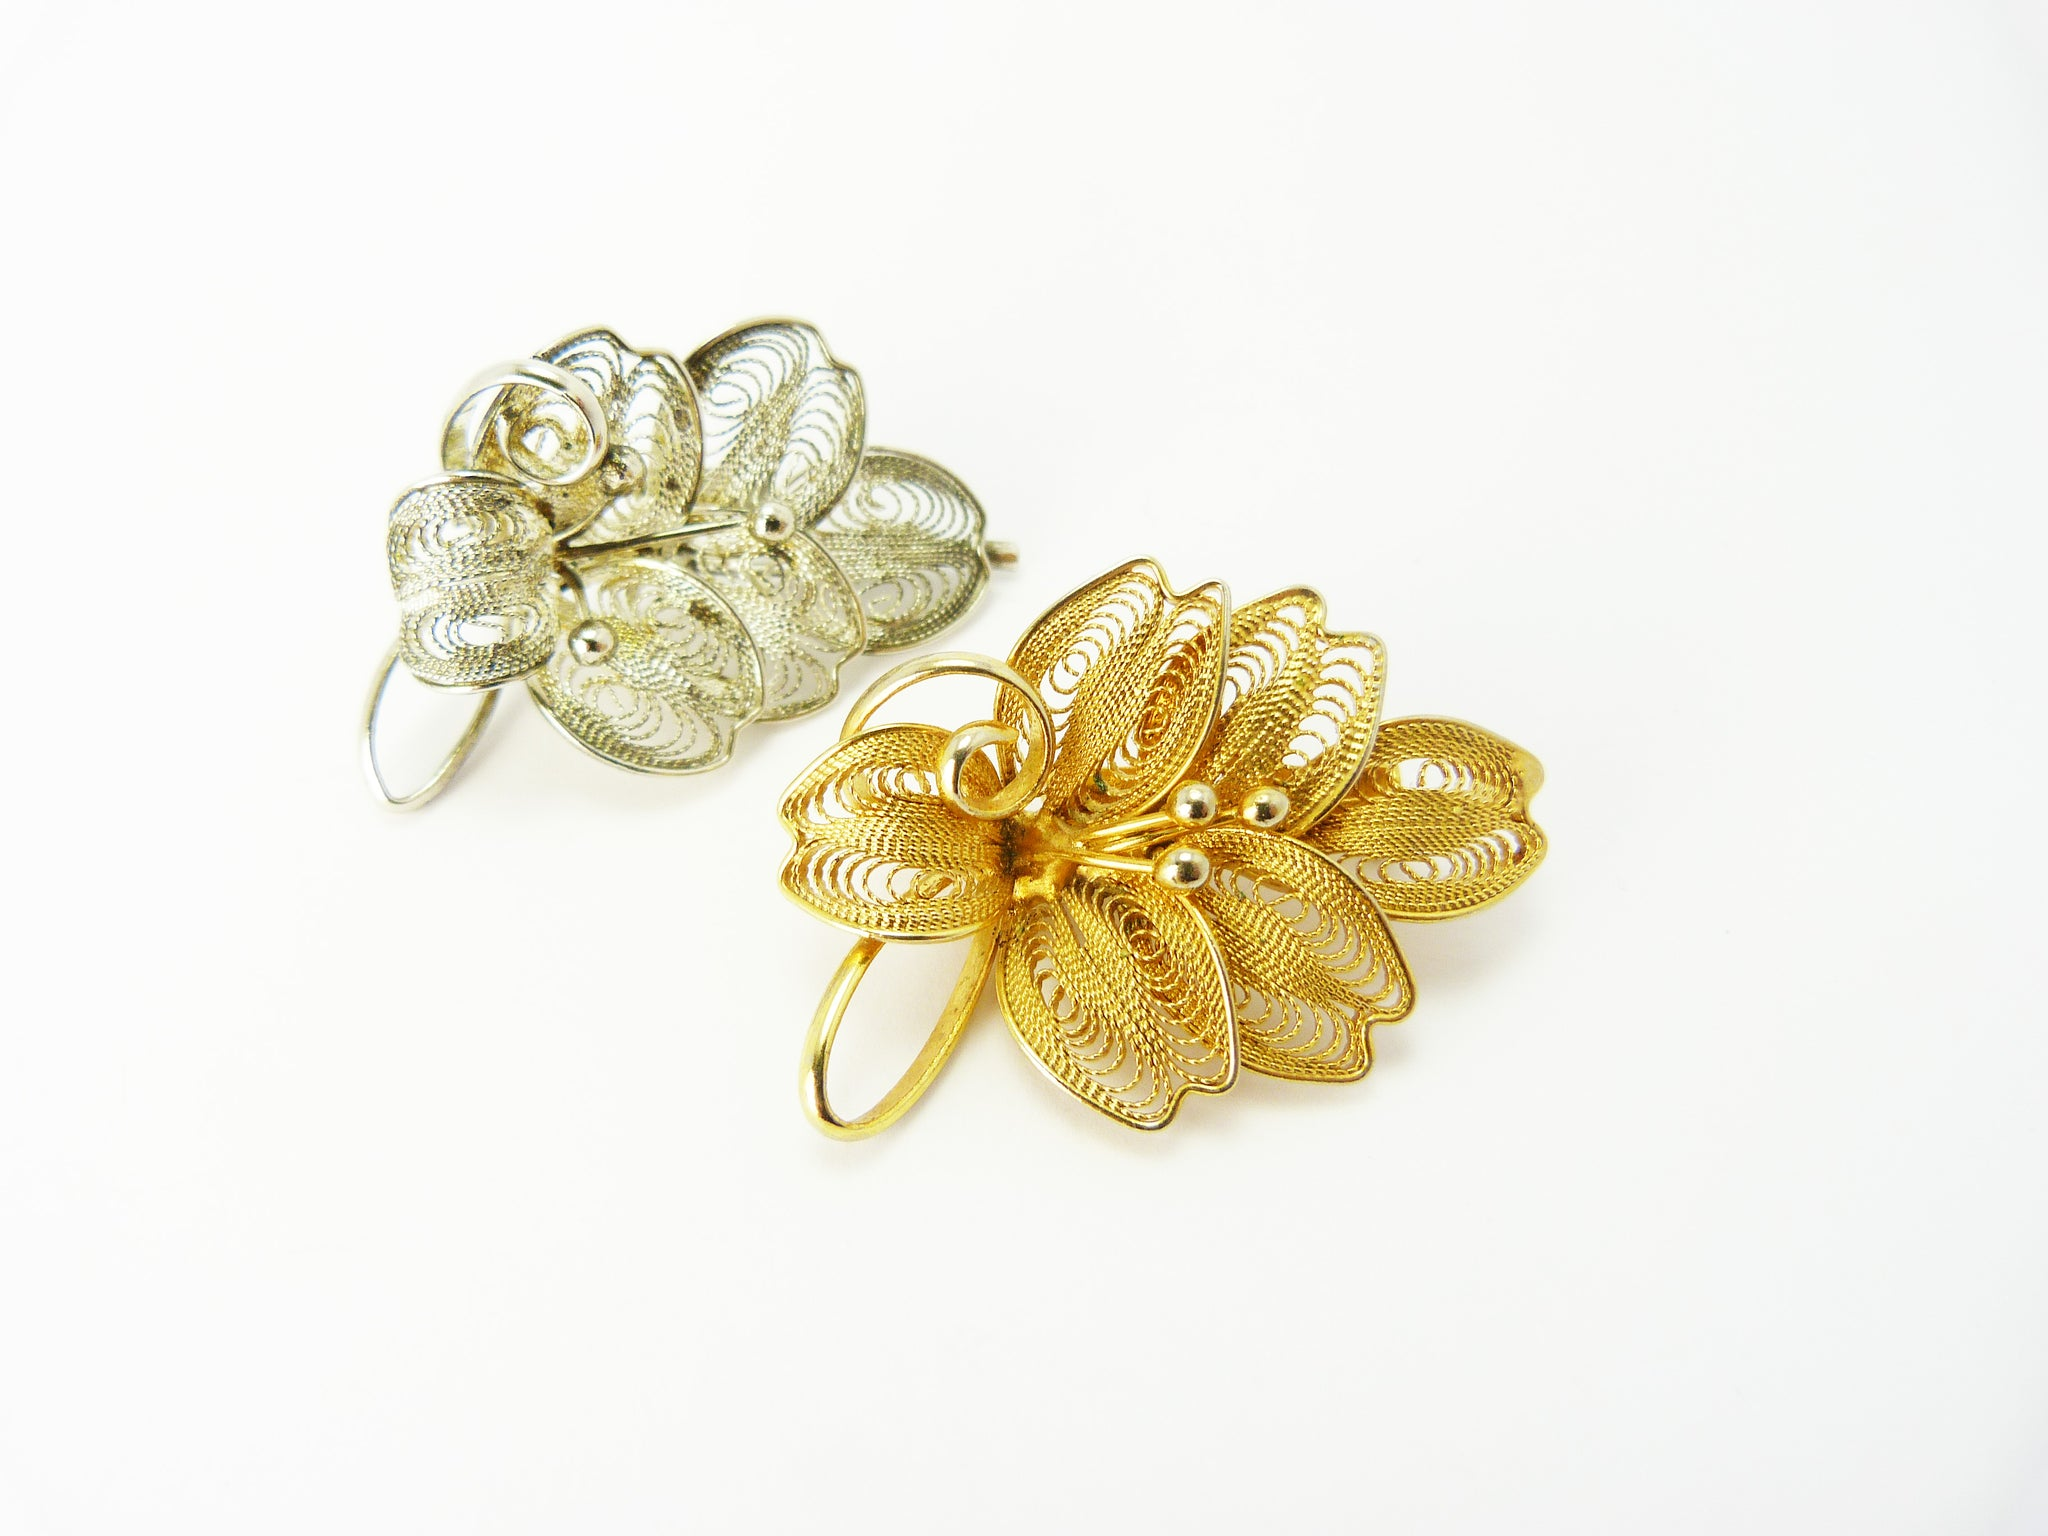 Vintage Gold & Silver Filigree Leaf Brooches